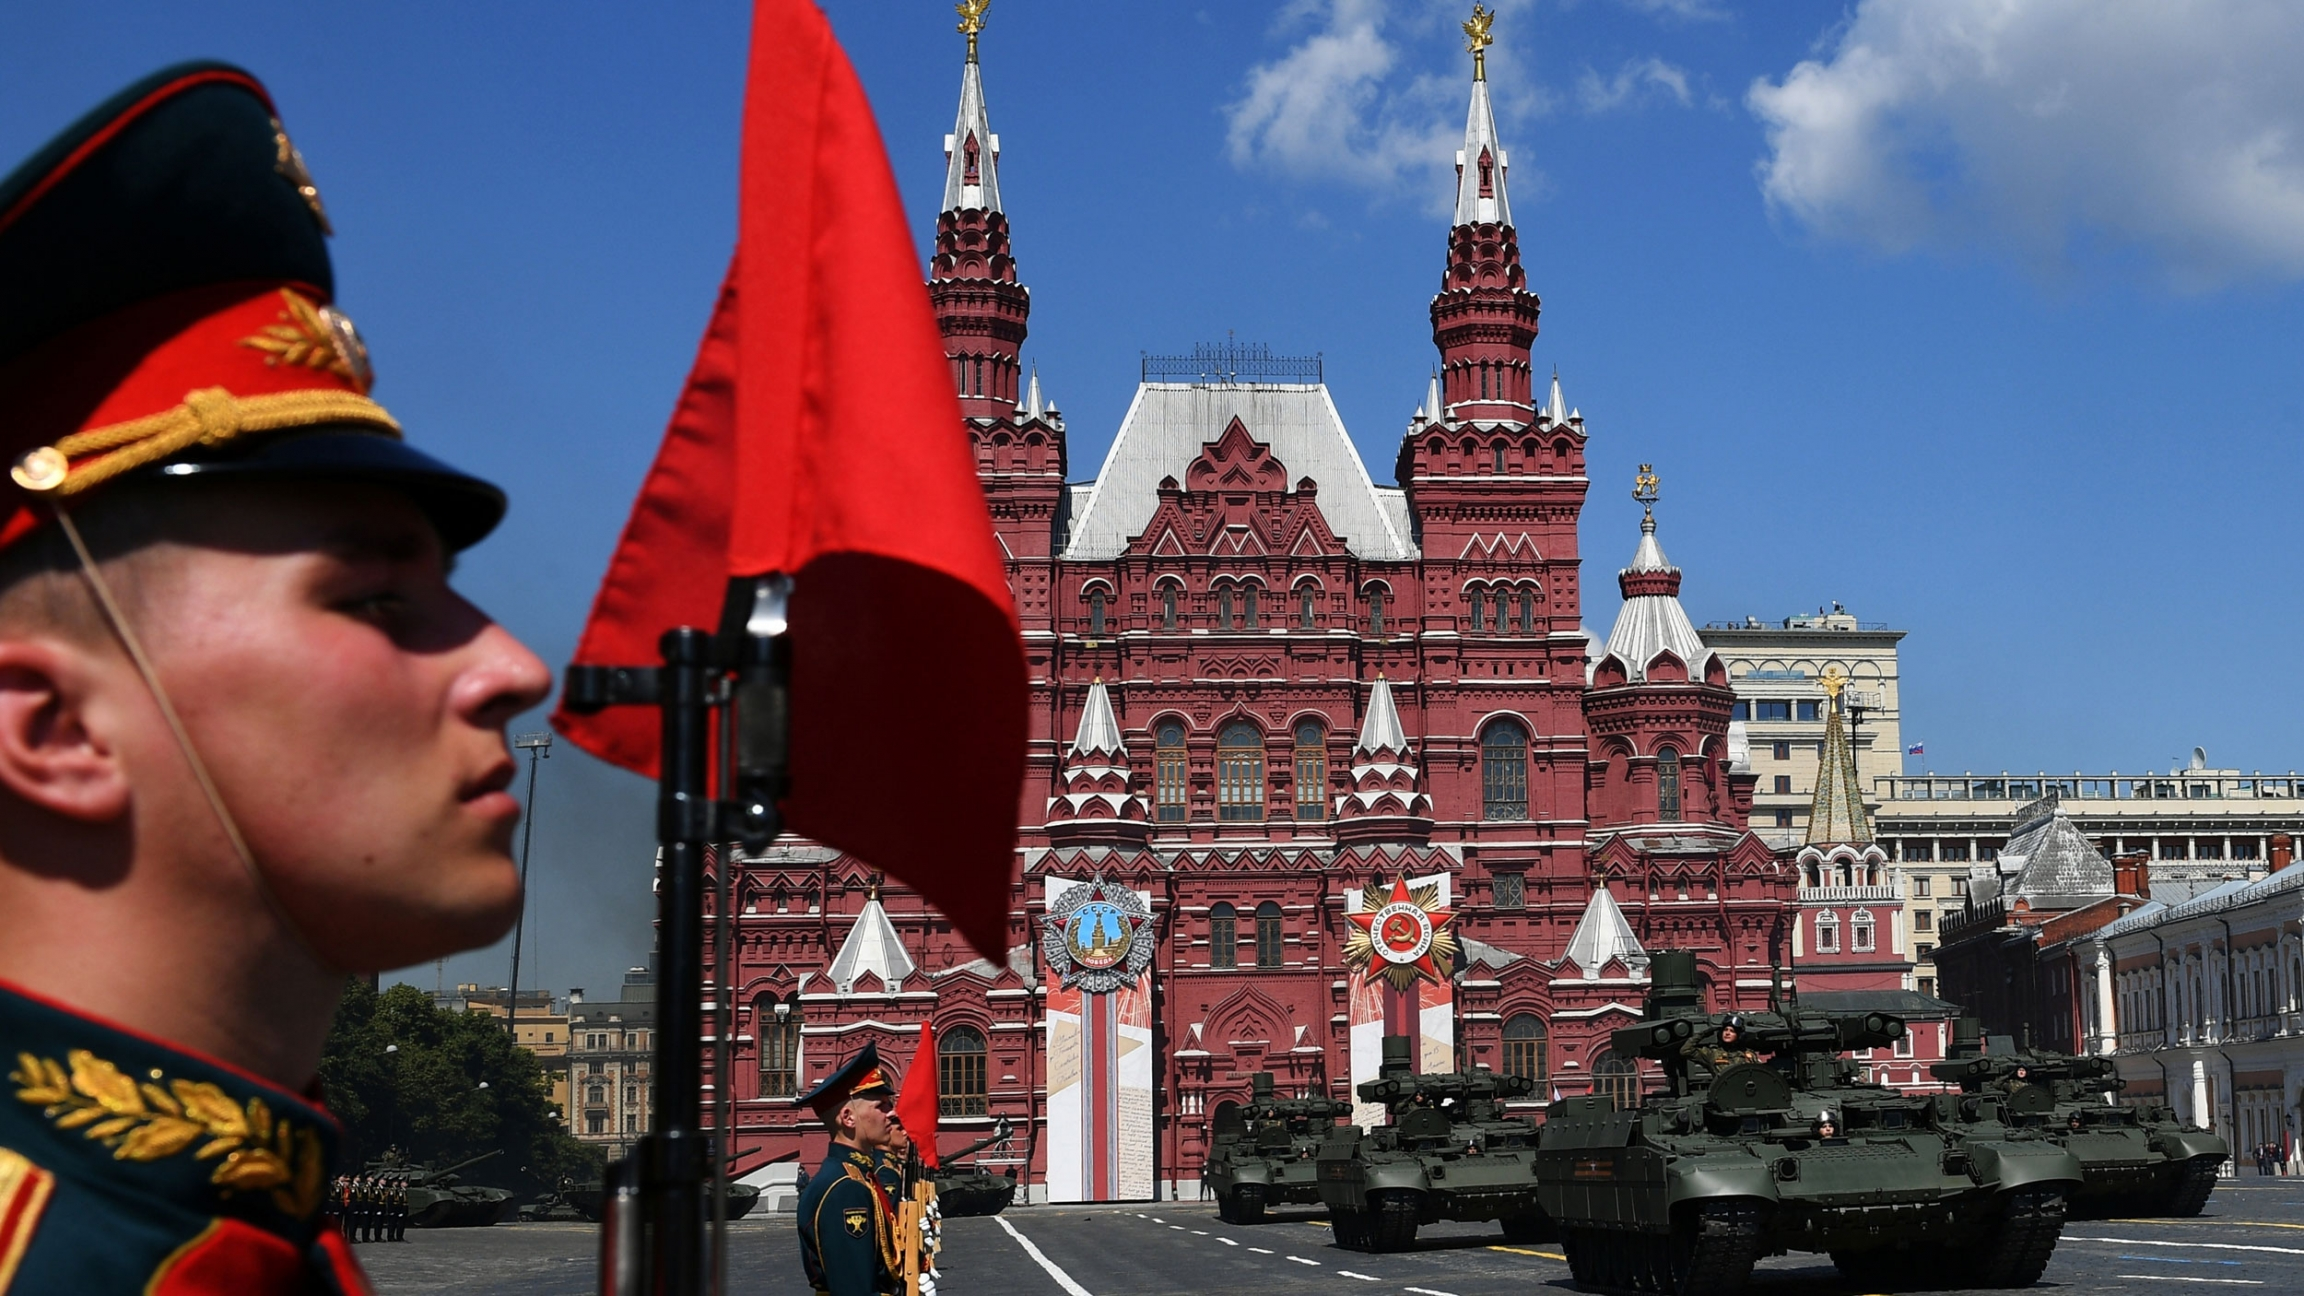 A close up of a man in uniform as tanks drive in Red Square in Moscow